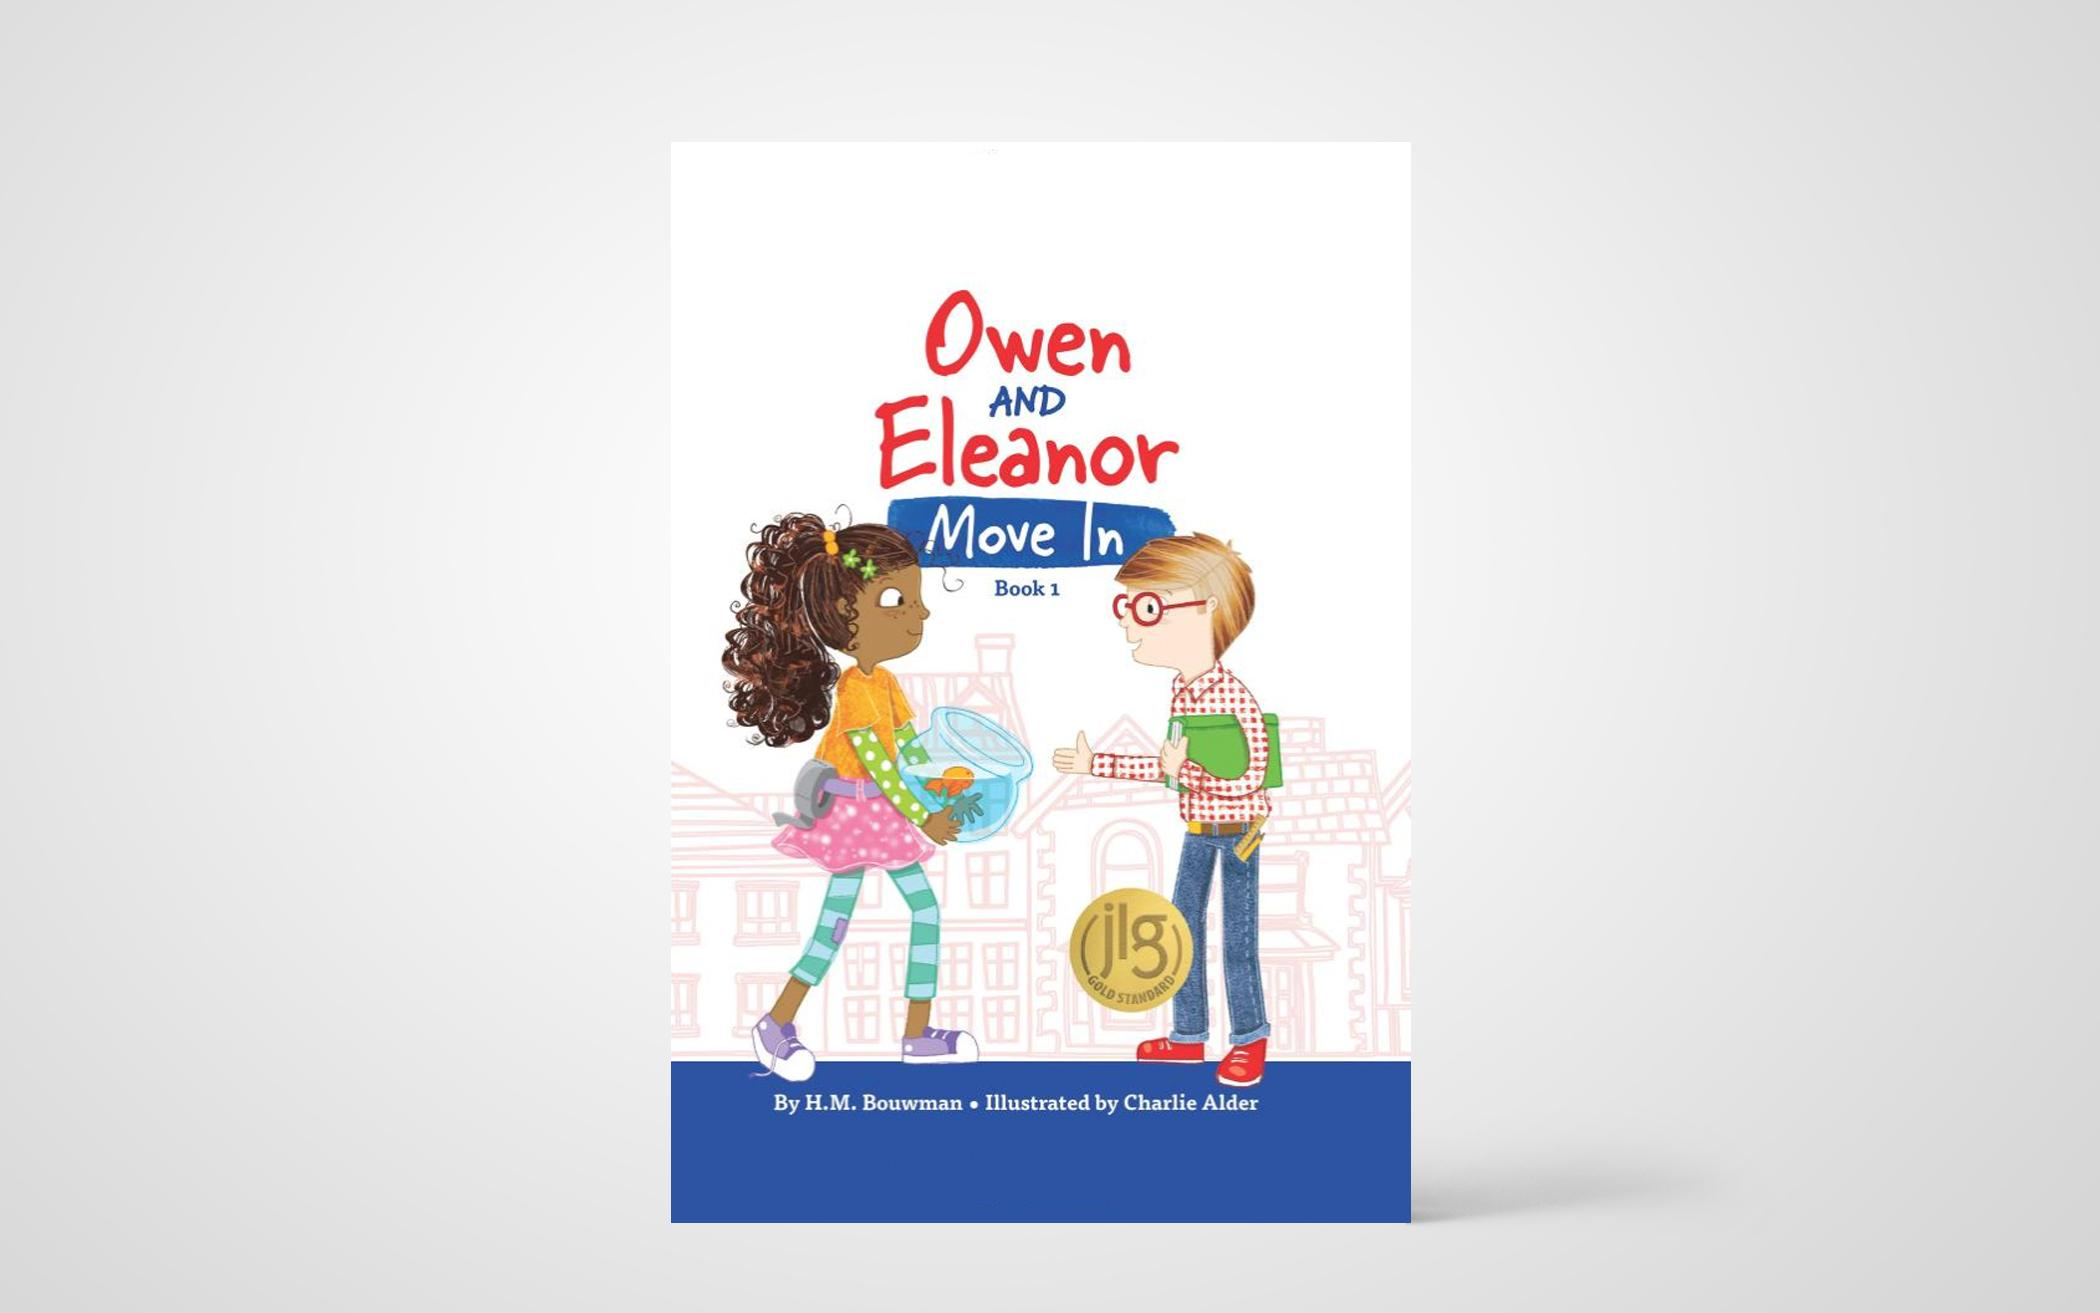 Owen and Eleanor Move In